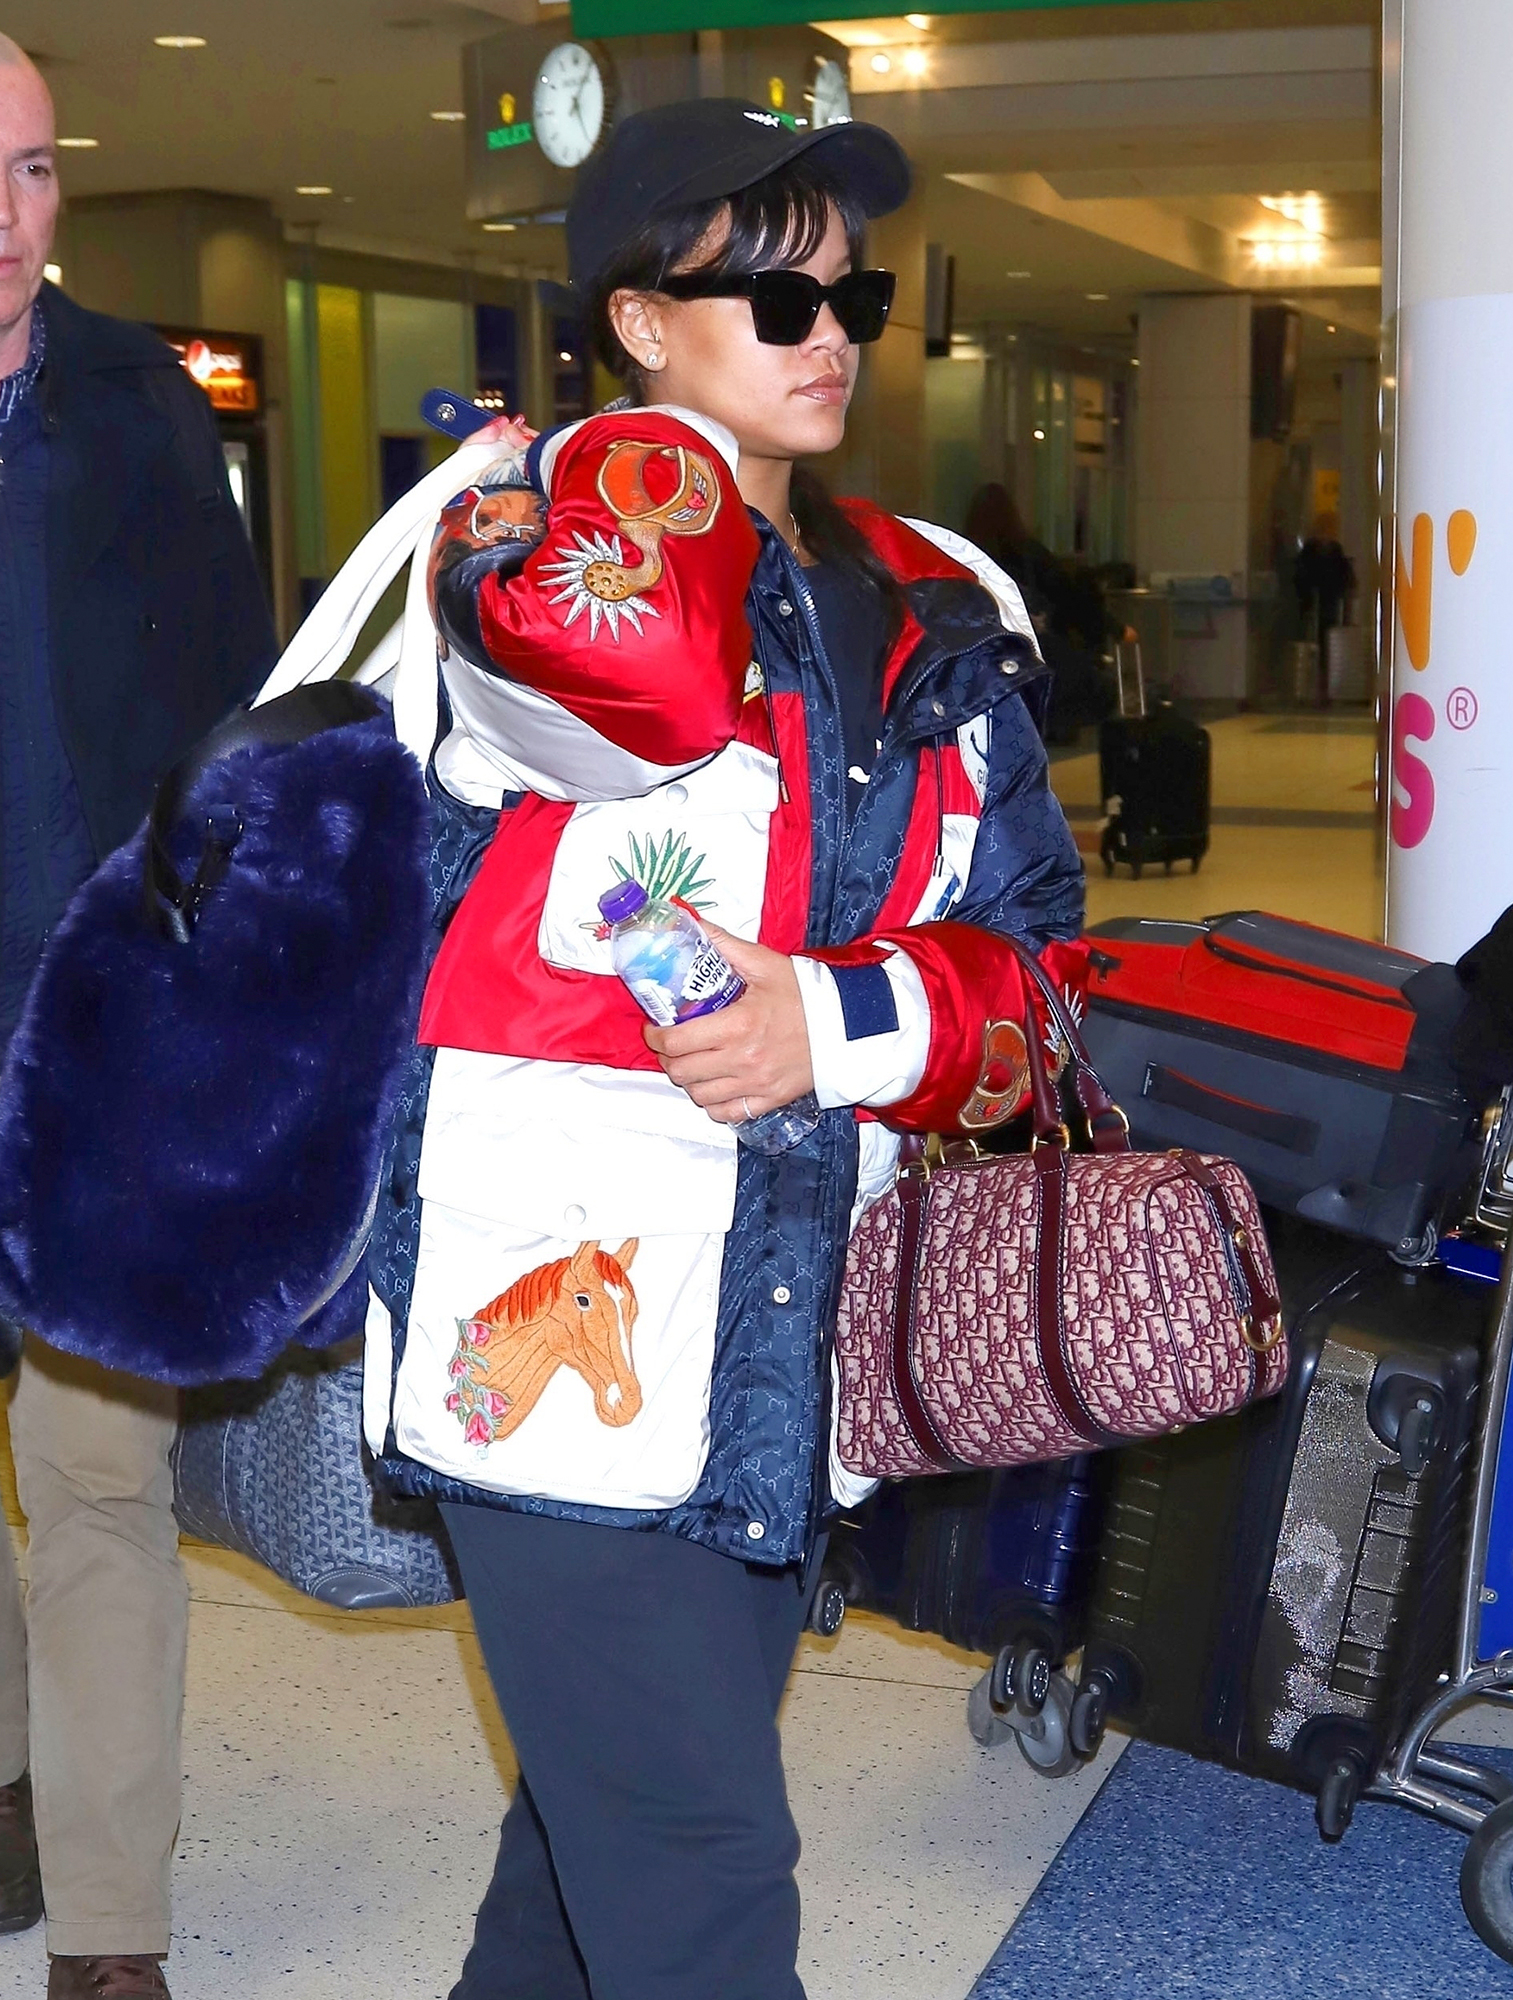 *EXCLUSIVE* Rihanna touches down in NYC